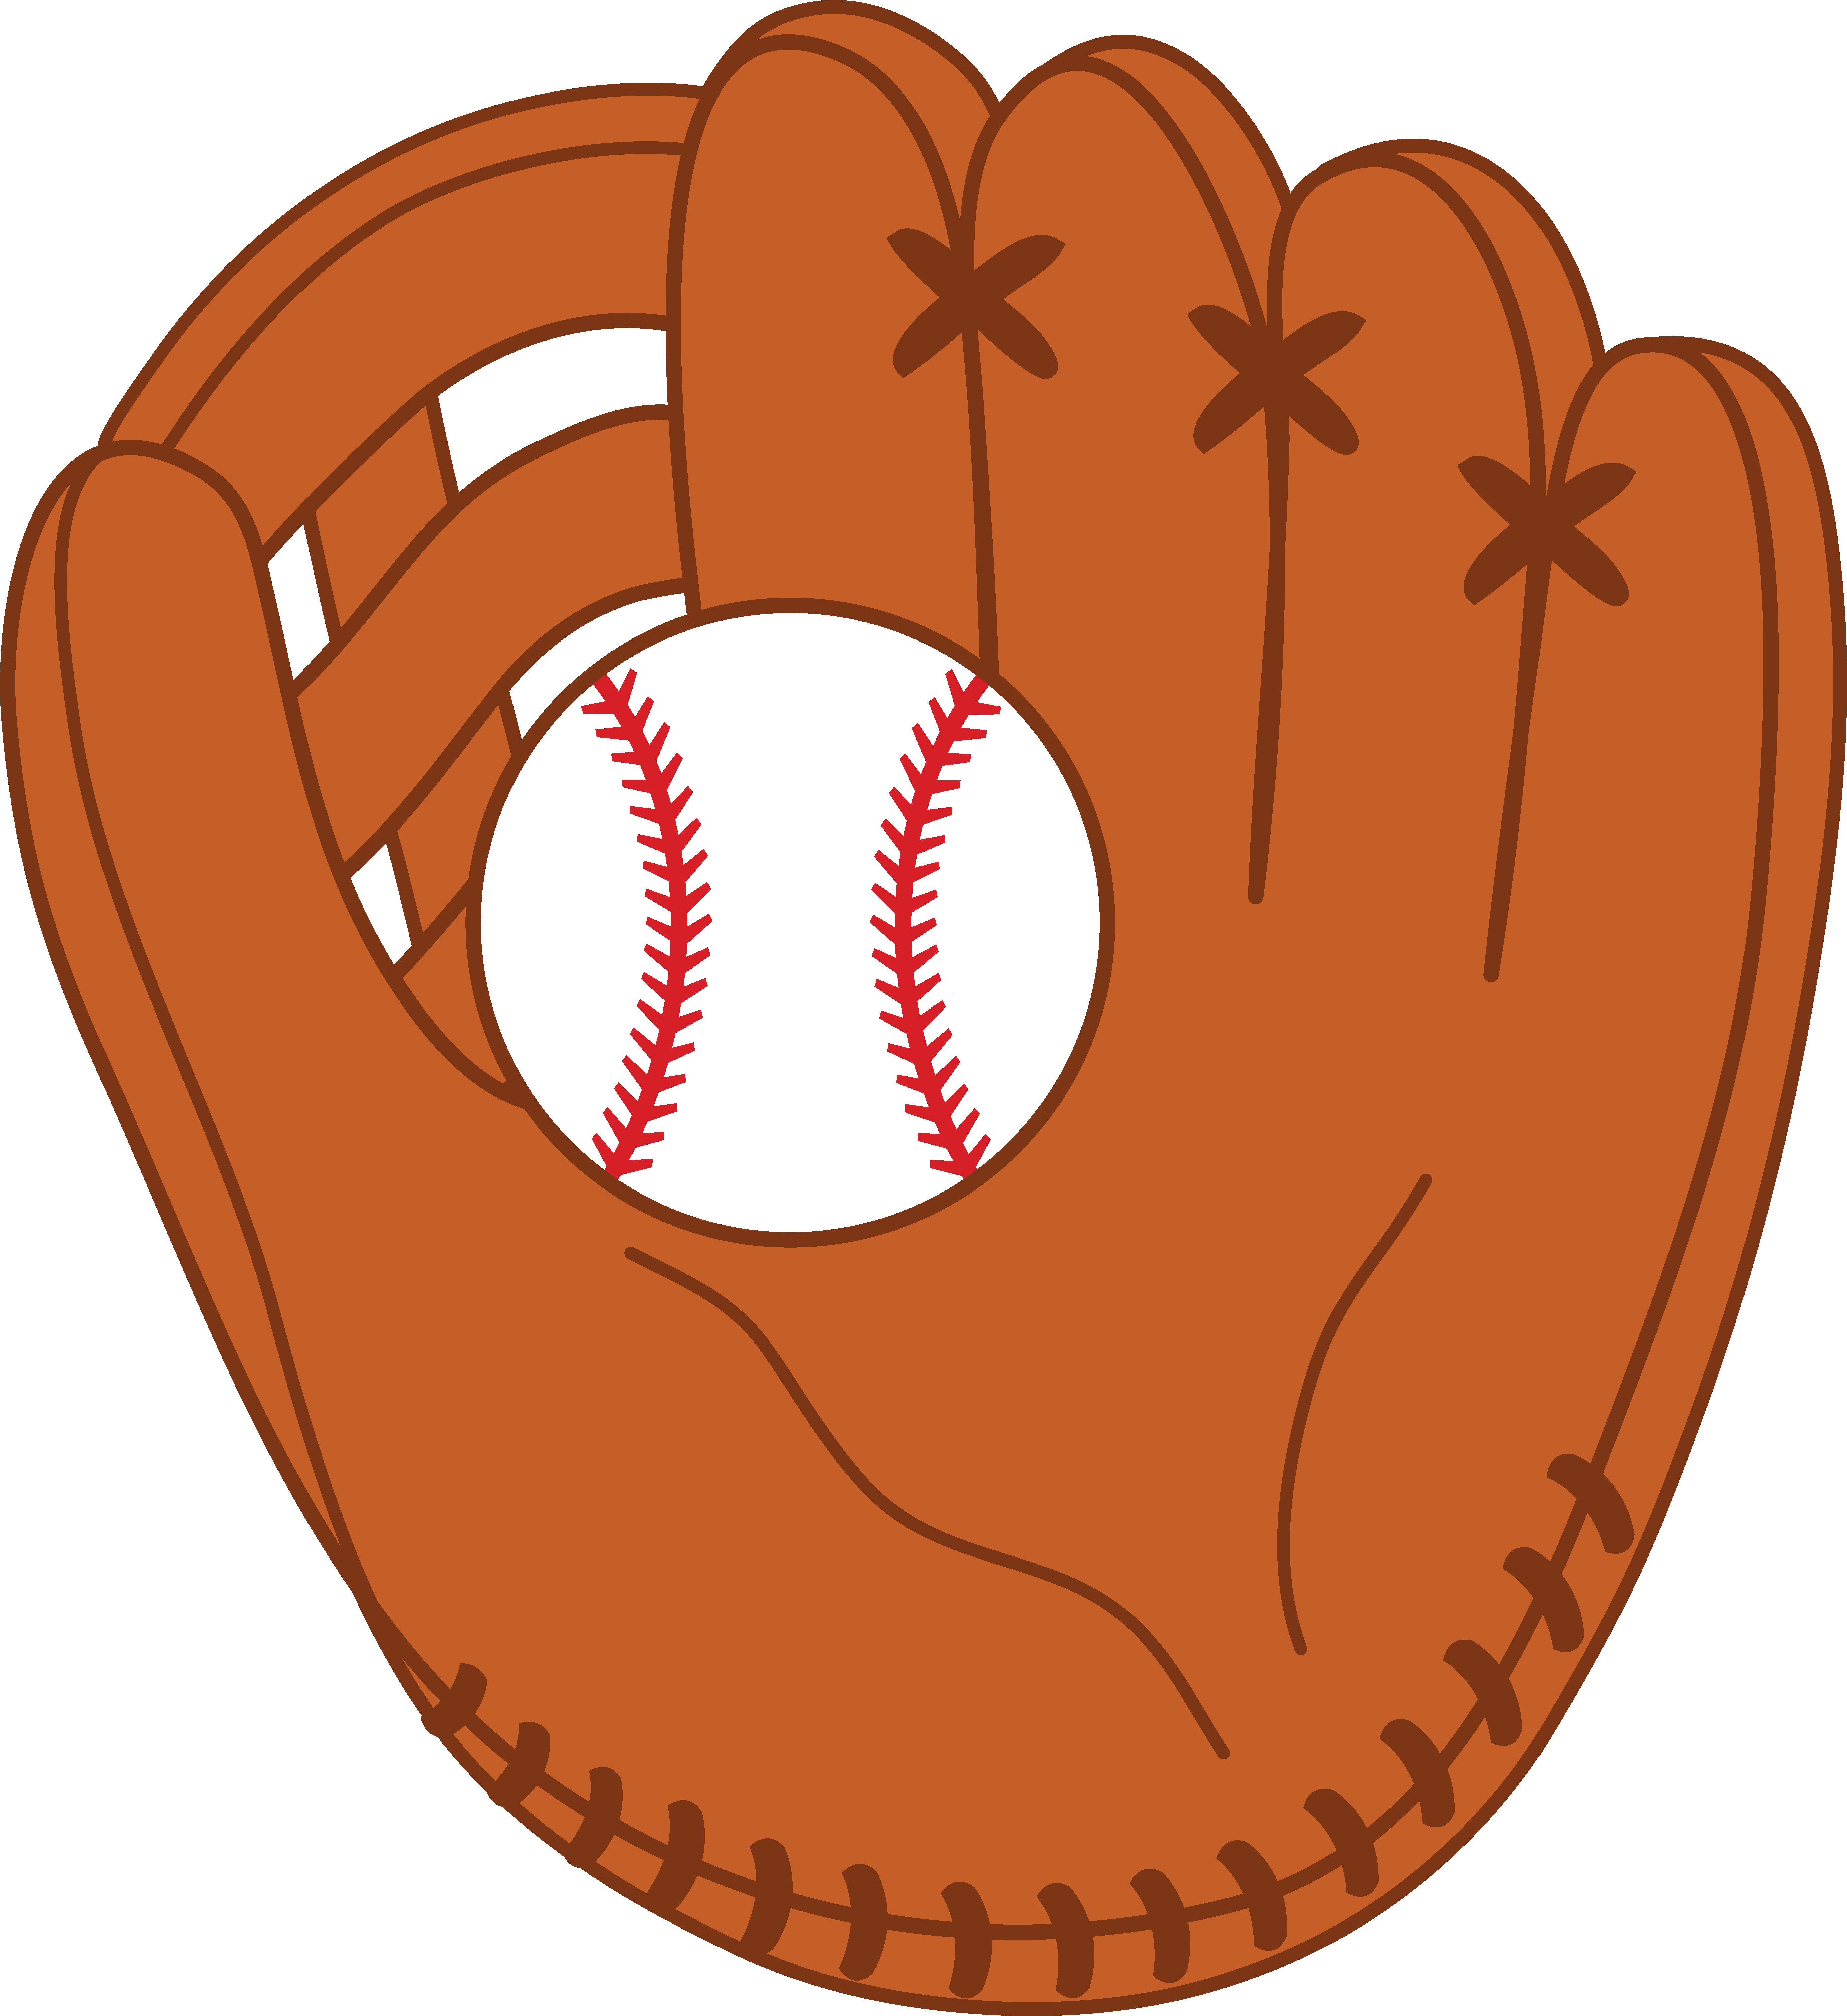 clipart royalty free download Baseball Glove Clipart